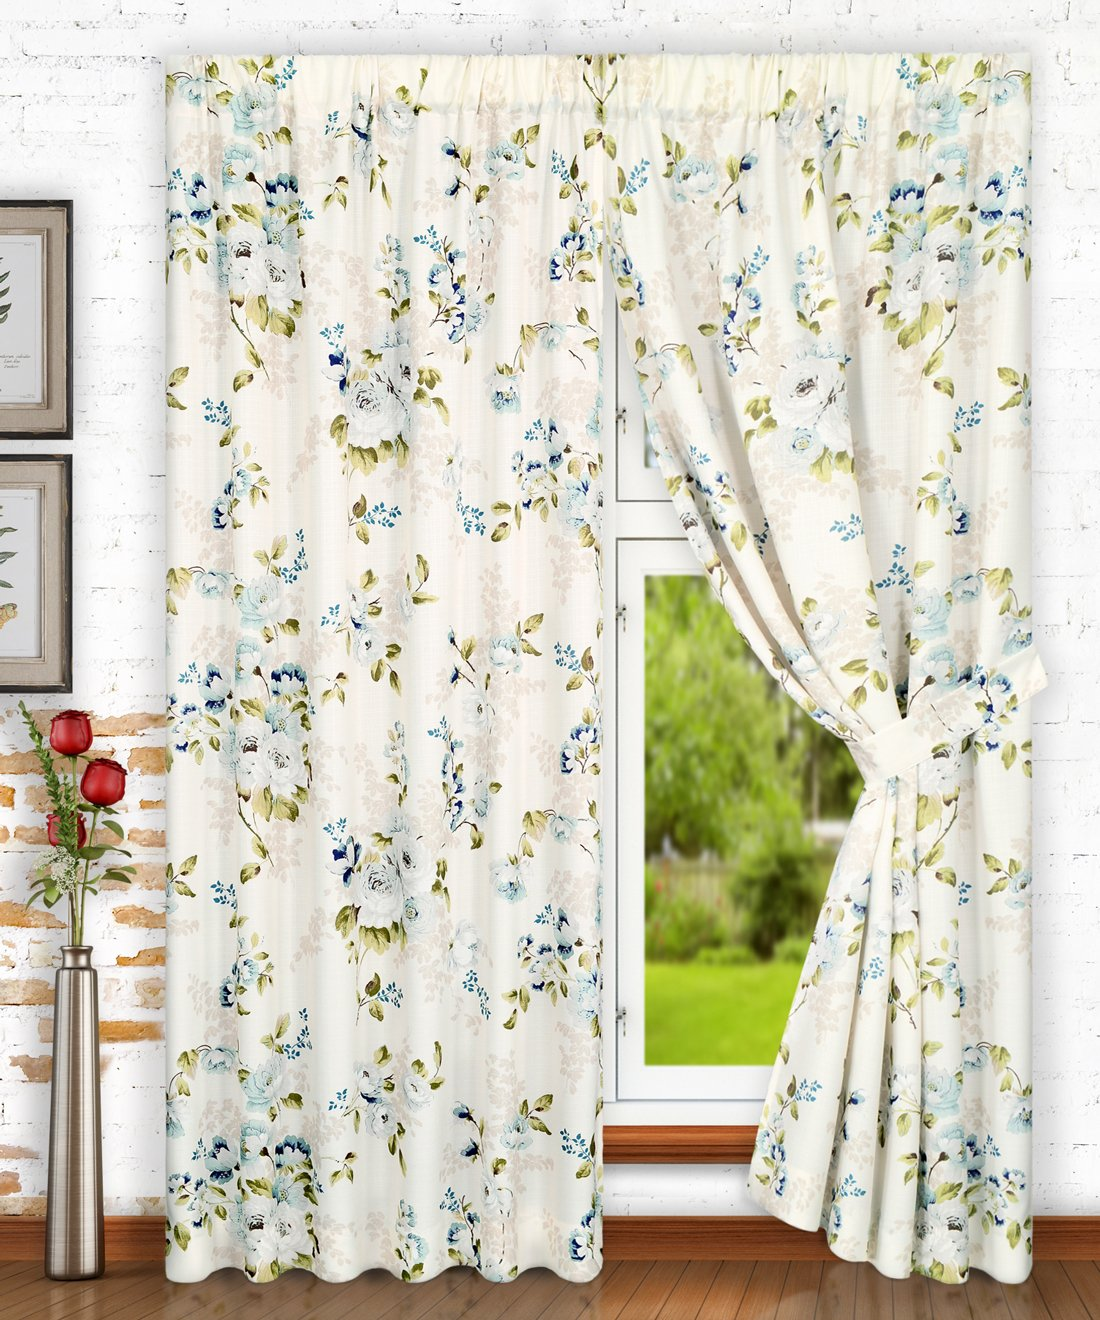 50 x 63 Lined Grommet Top Panel, 50 x 63, Grey Ellis Curtain Chatsworth Traditional Floral Design